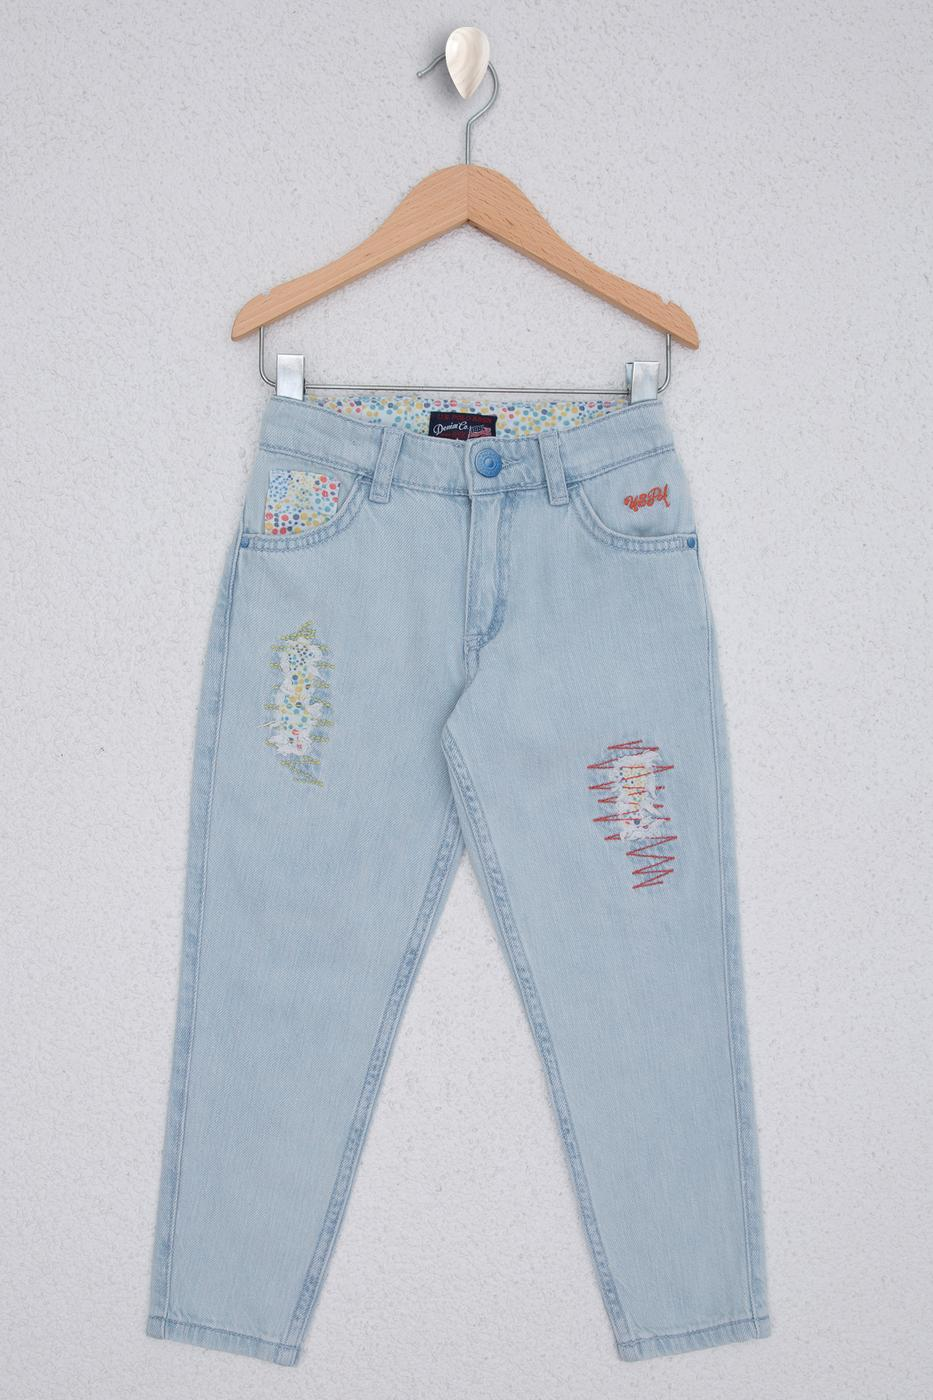 Mavi Denim Pantolon